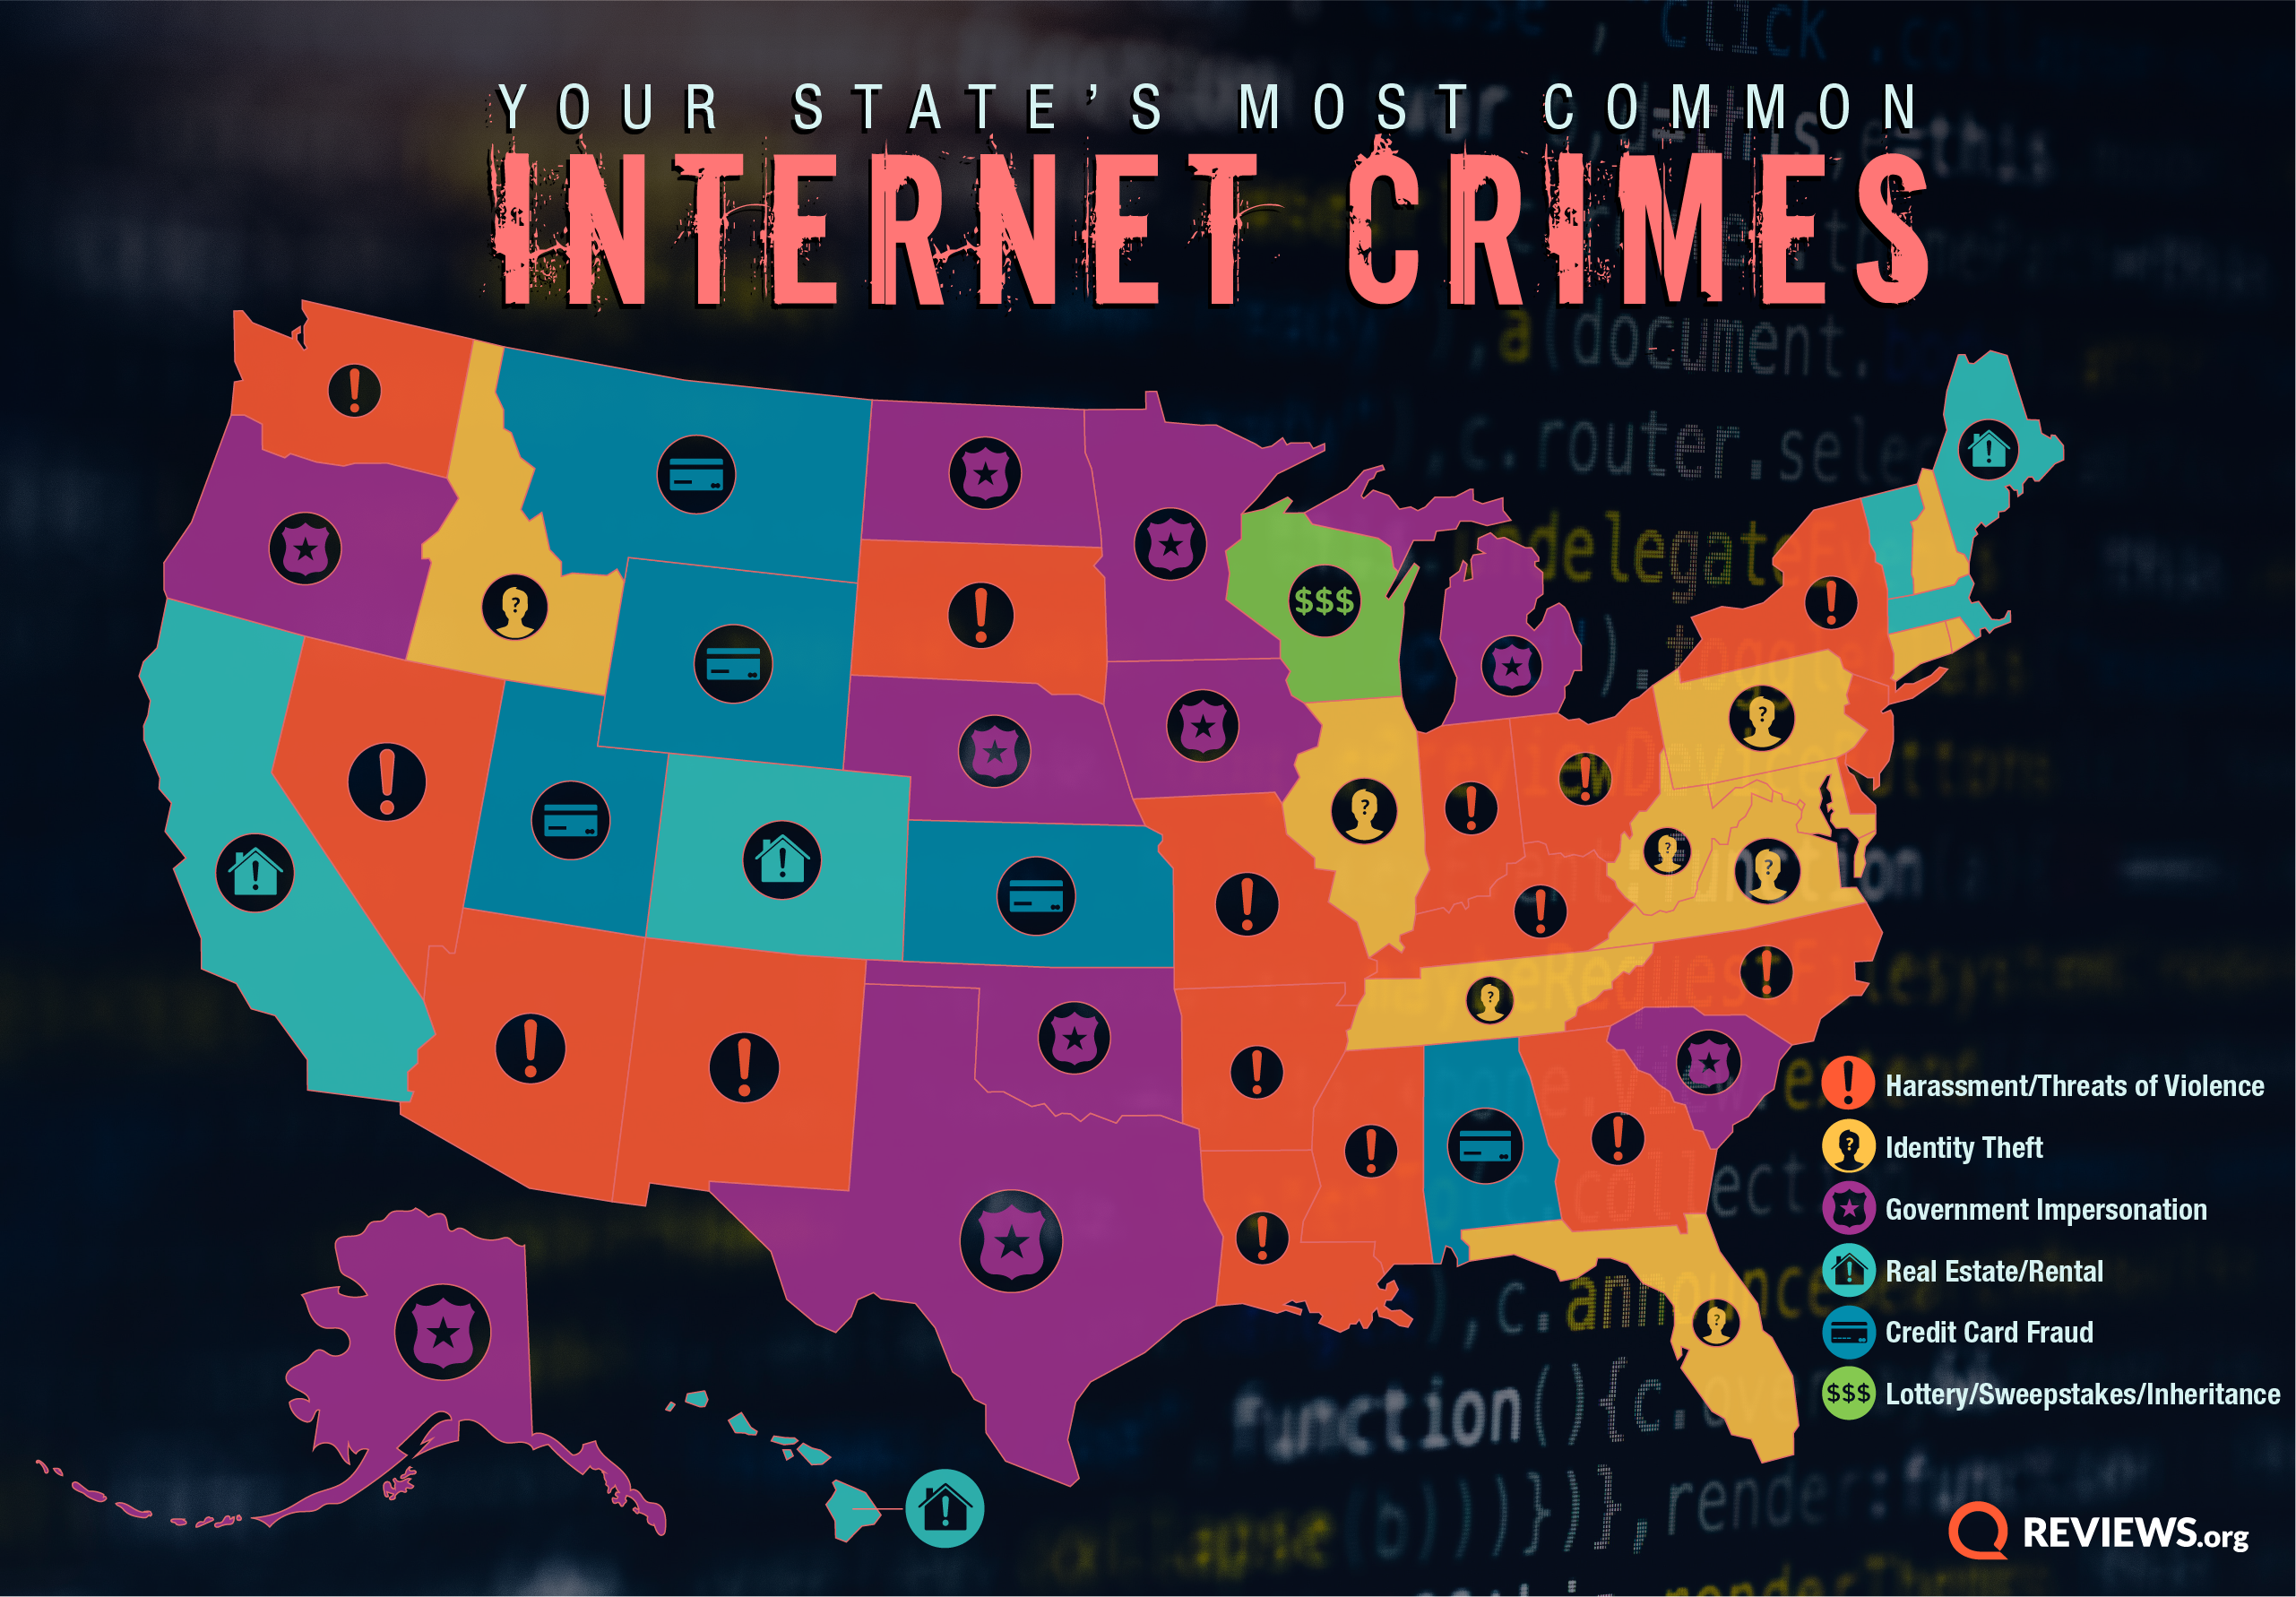 3 Most Common Online Crimes In Every State Reviews Org